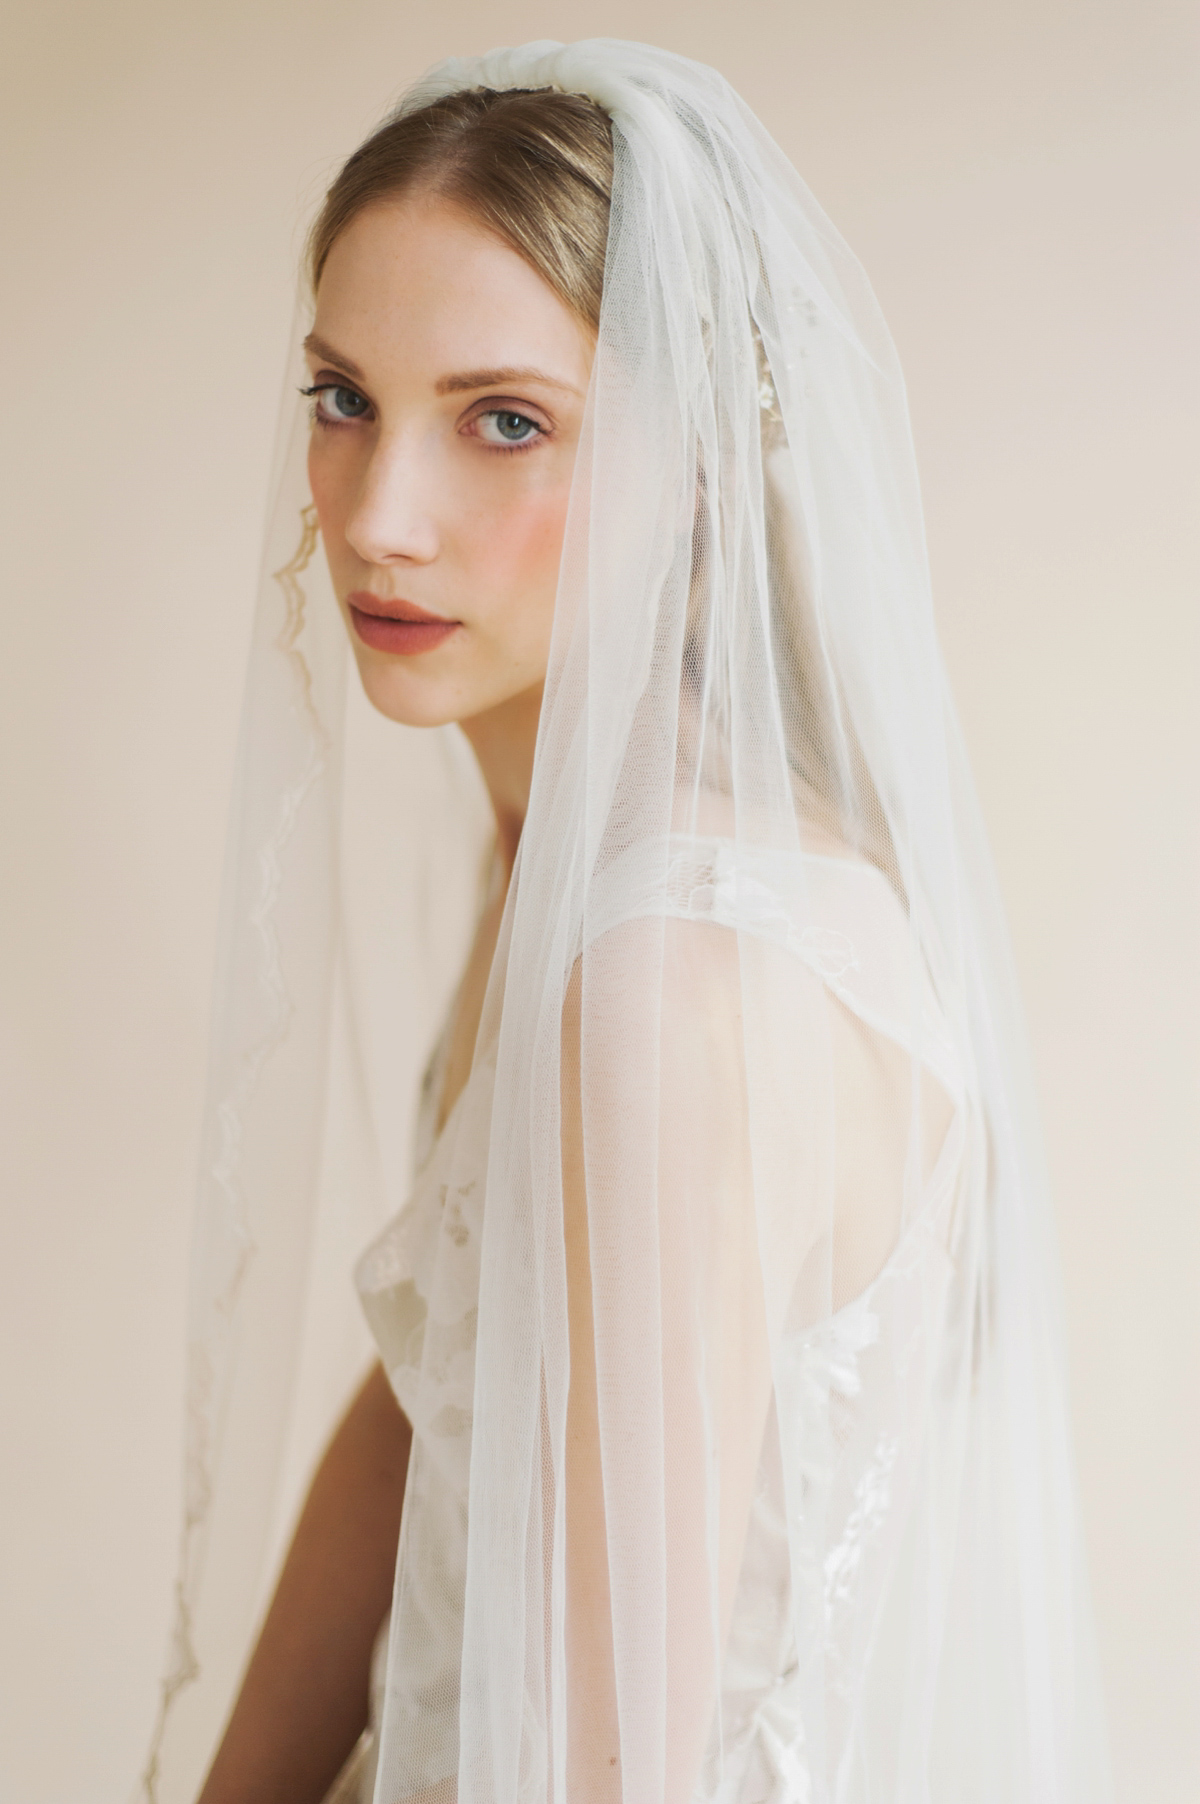 Celebrating Wedding Style, Not Convention – Welcome To The White ...